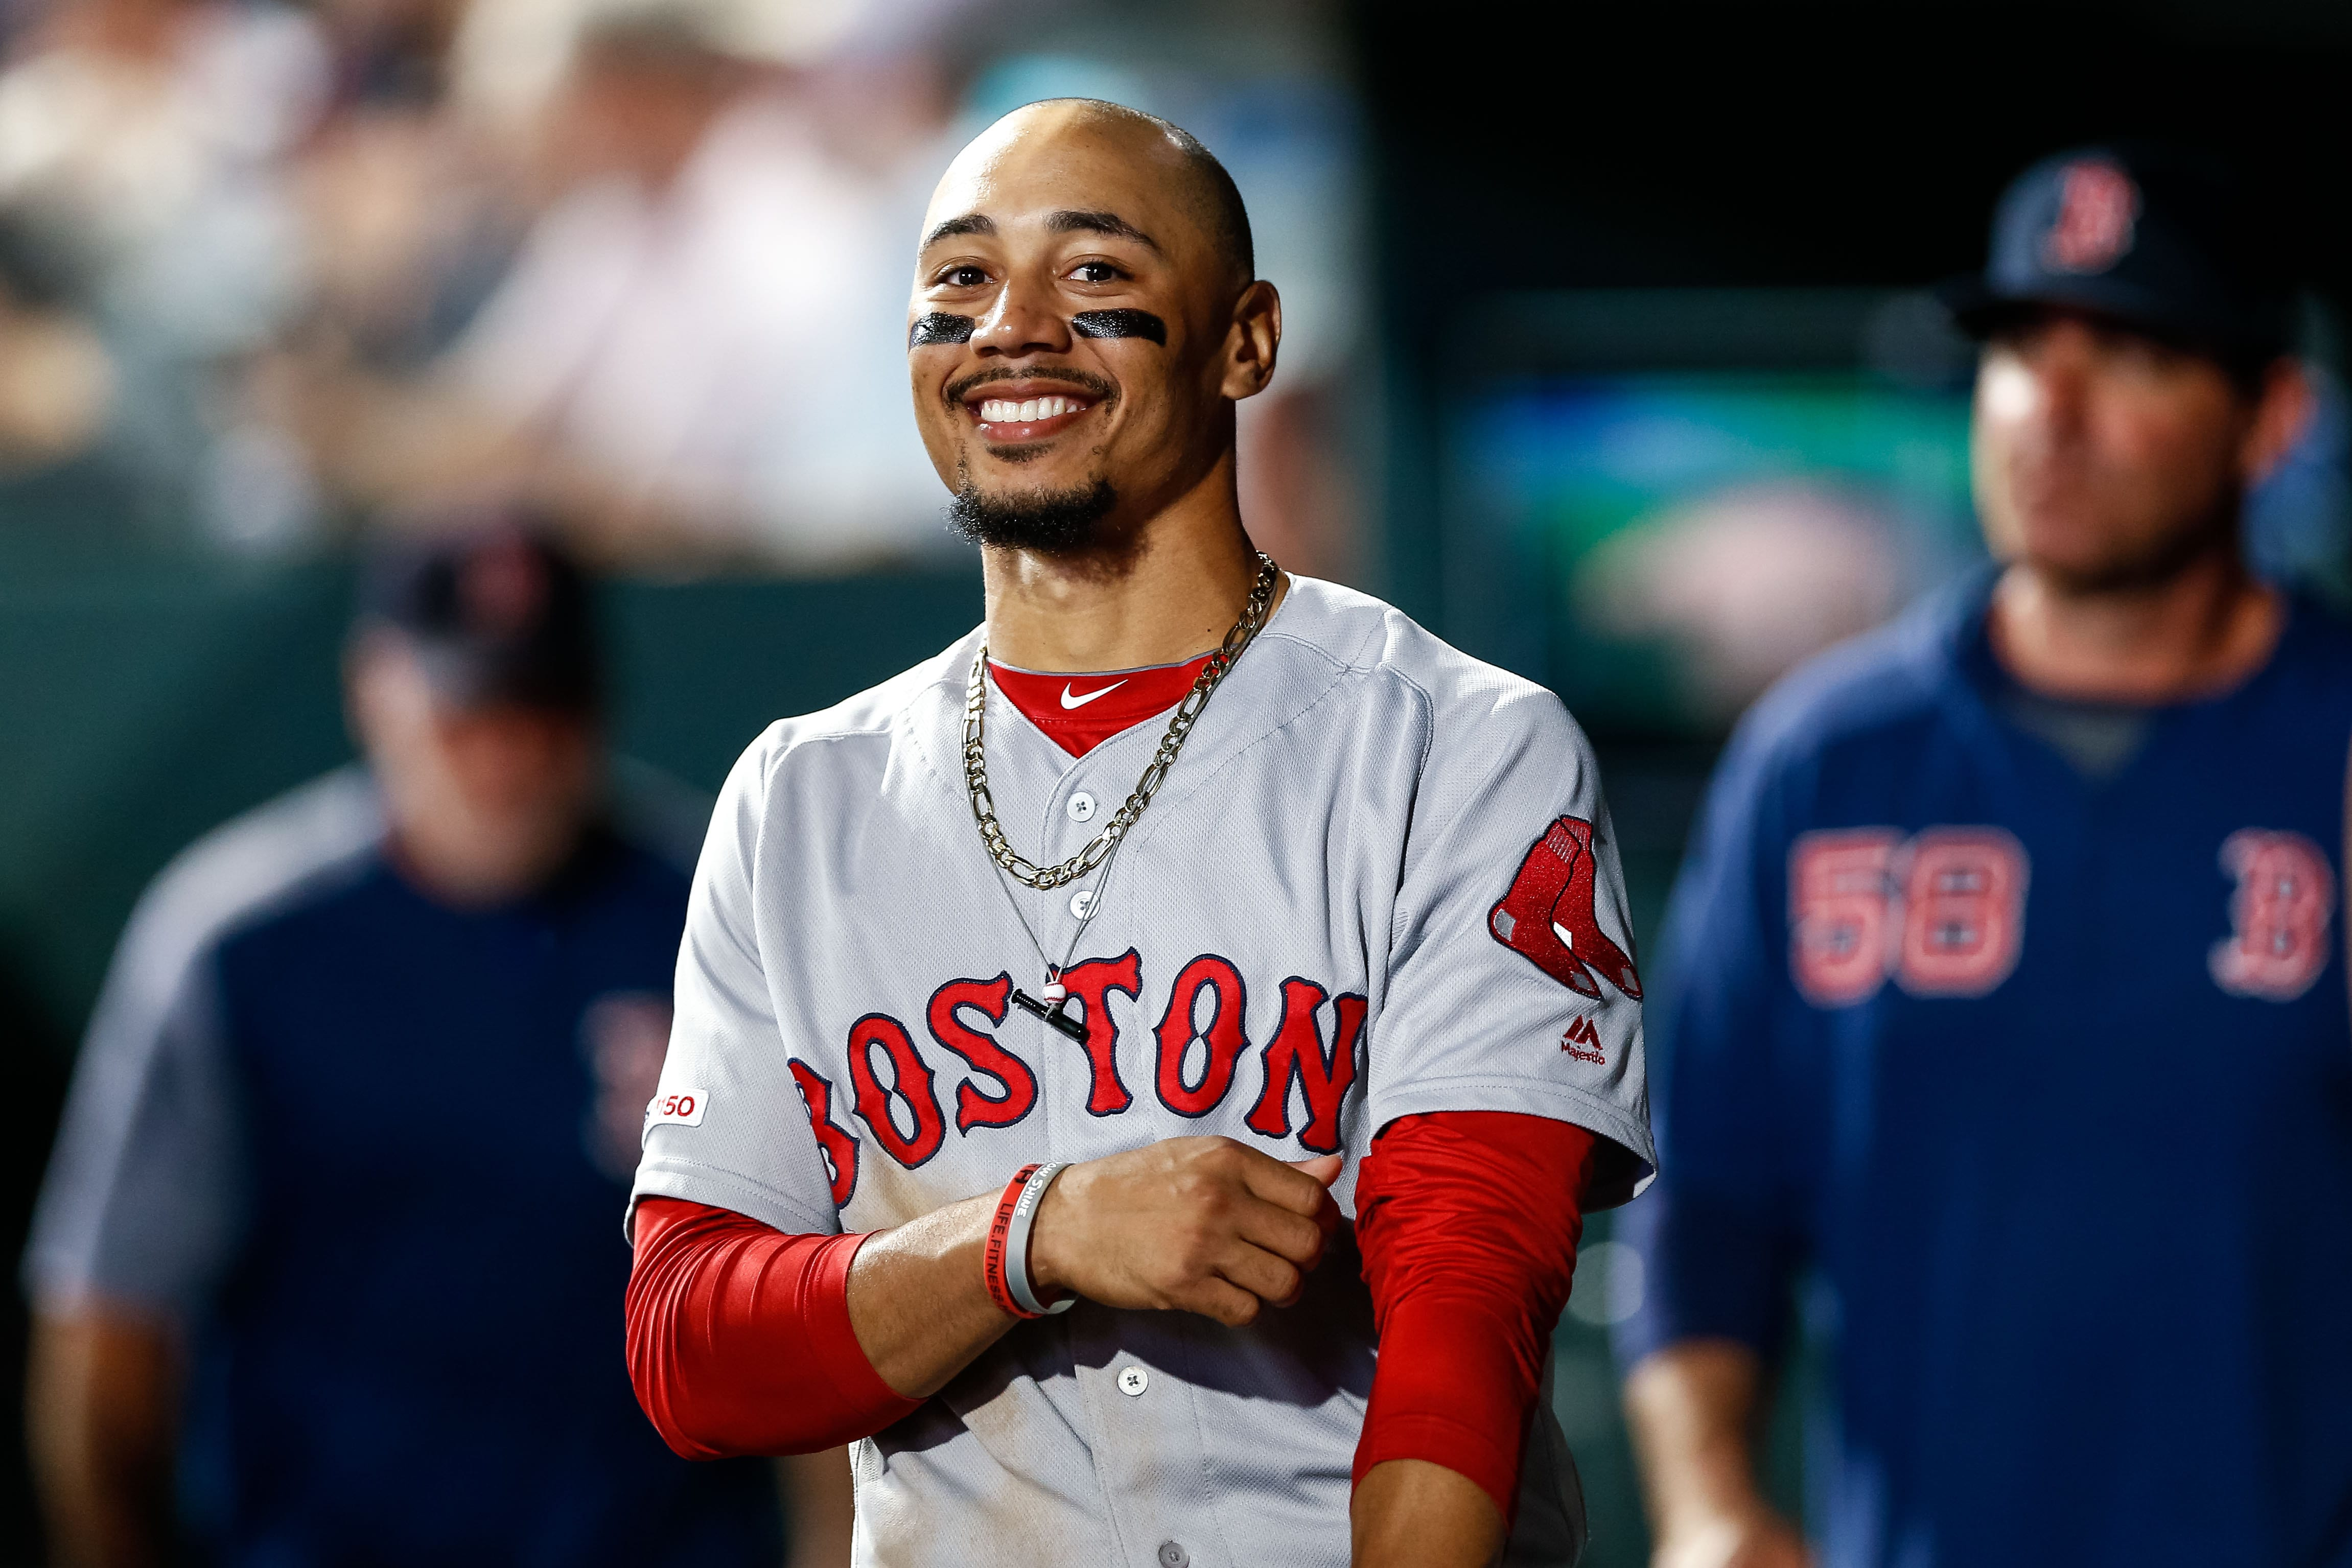 Boston Red Sox, Mookie Betts